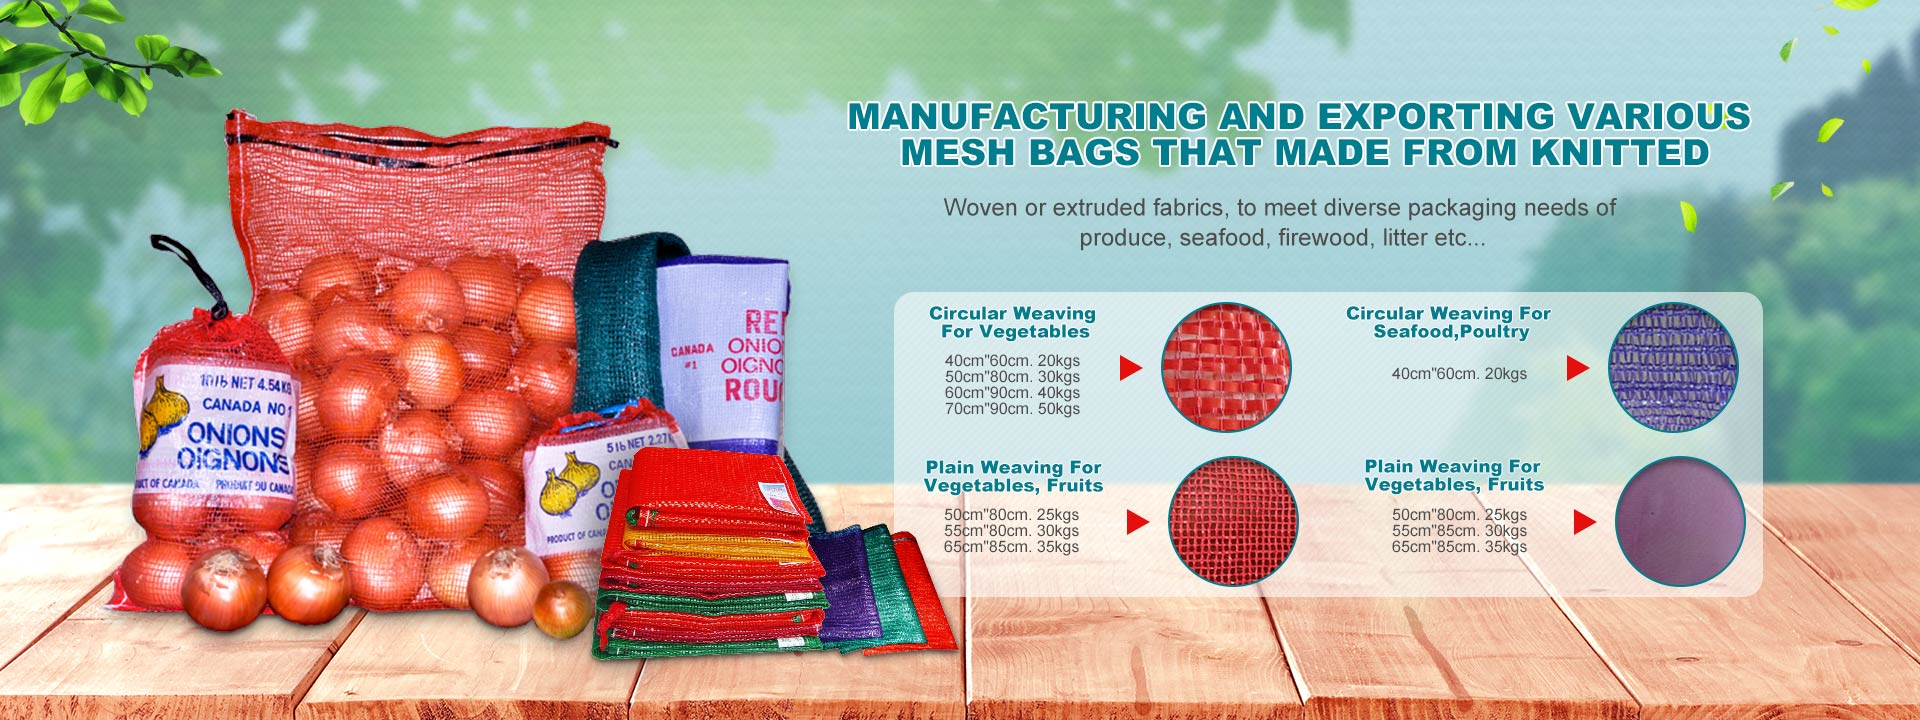 Manufacturing and exporting various mesh bags that made from knitted